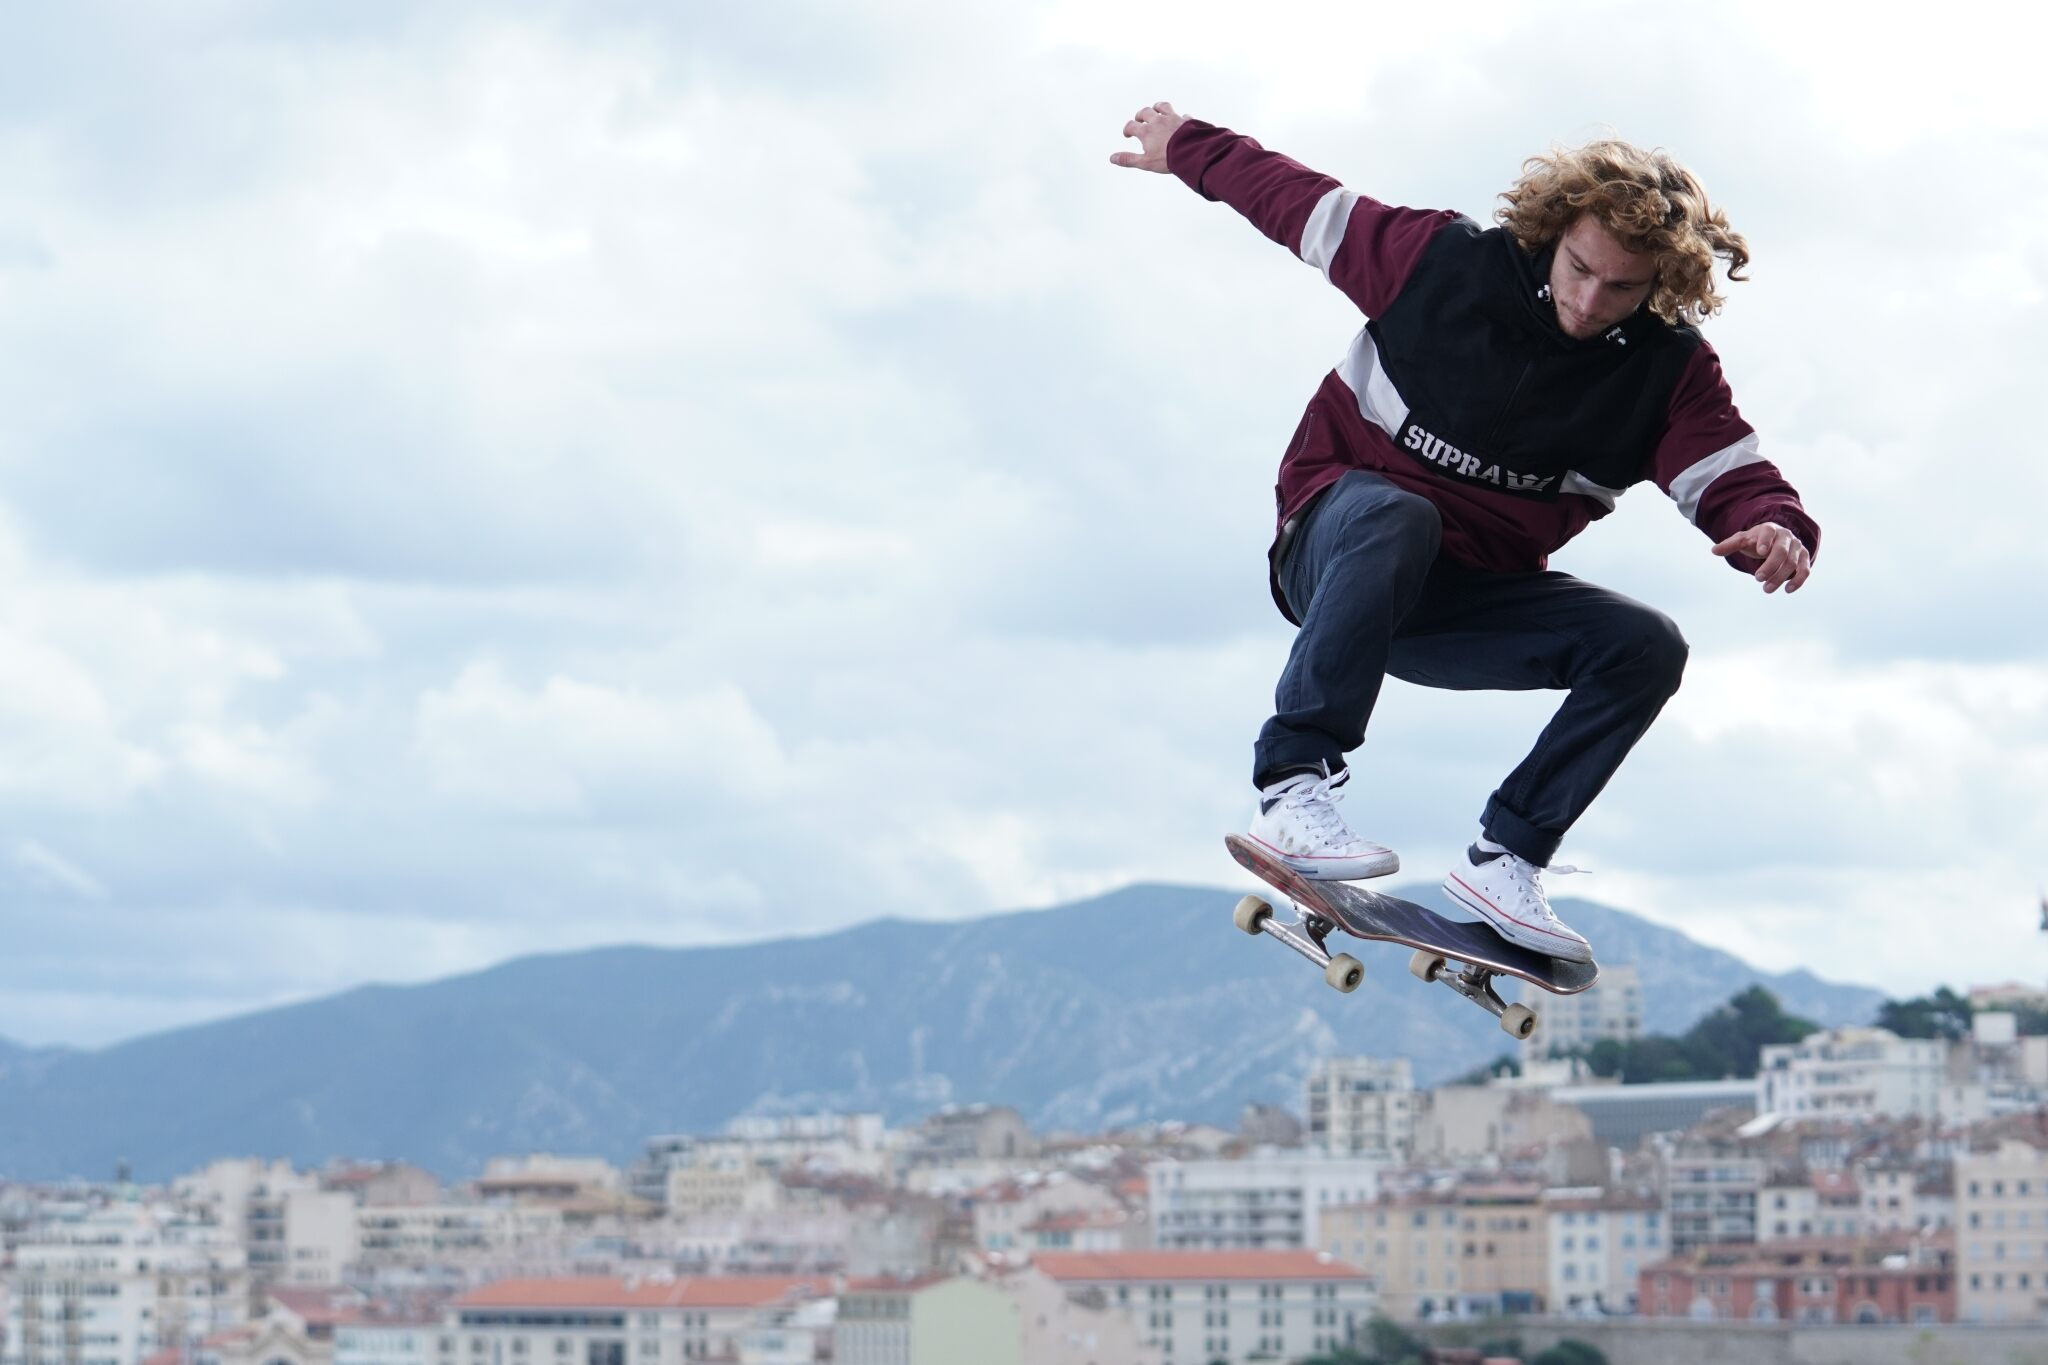 Young man skateboarding mid-air against a backdrop of buildings & mountains, shot with the Sony FE 70-200mm f/2.8 GM OSS lens